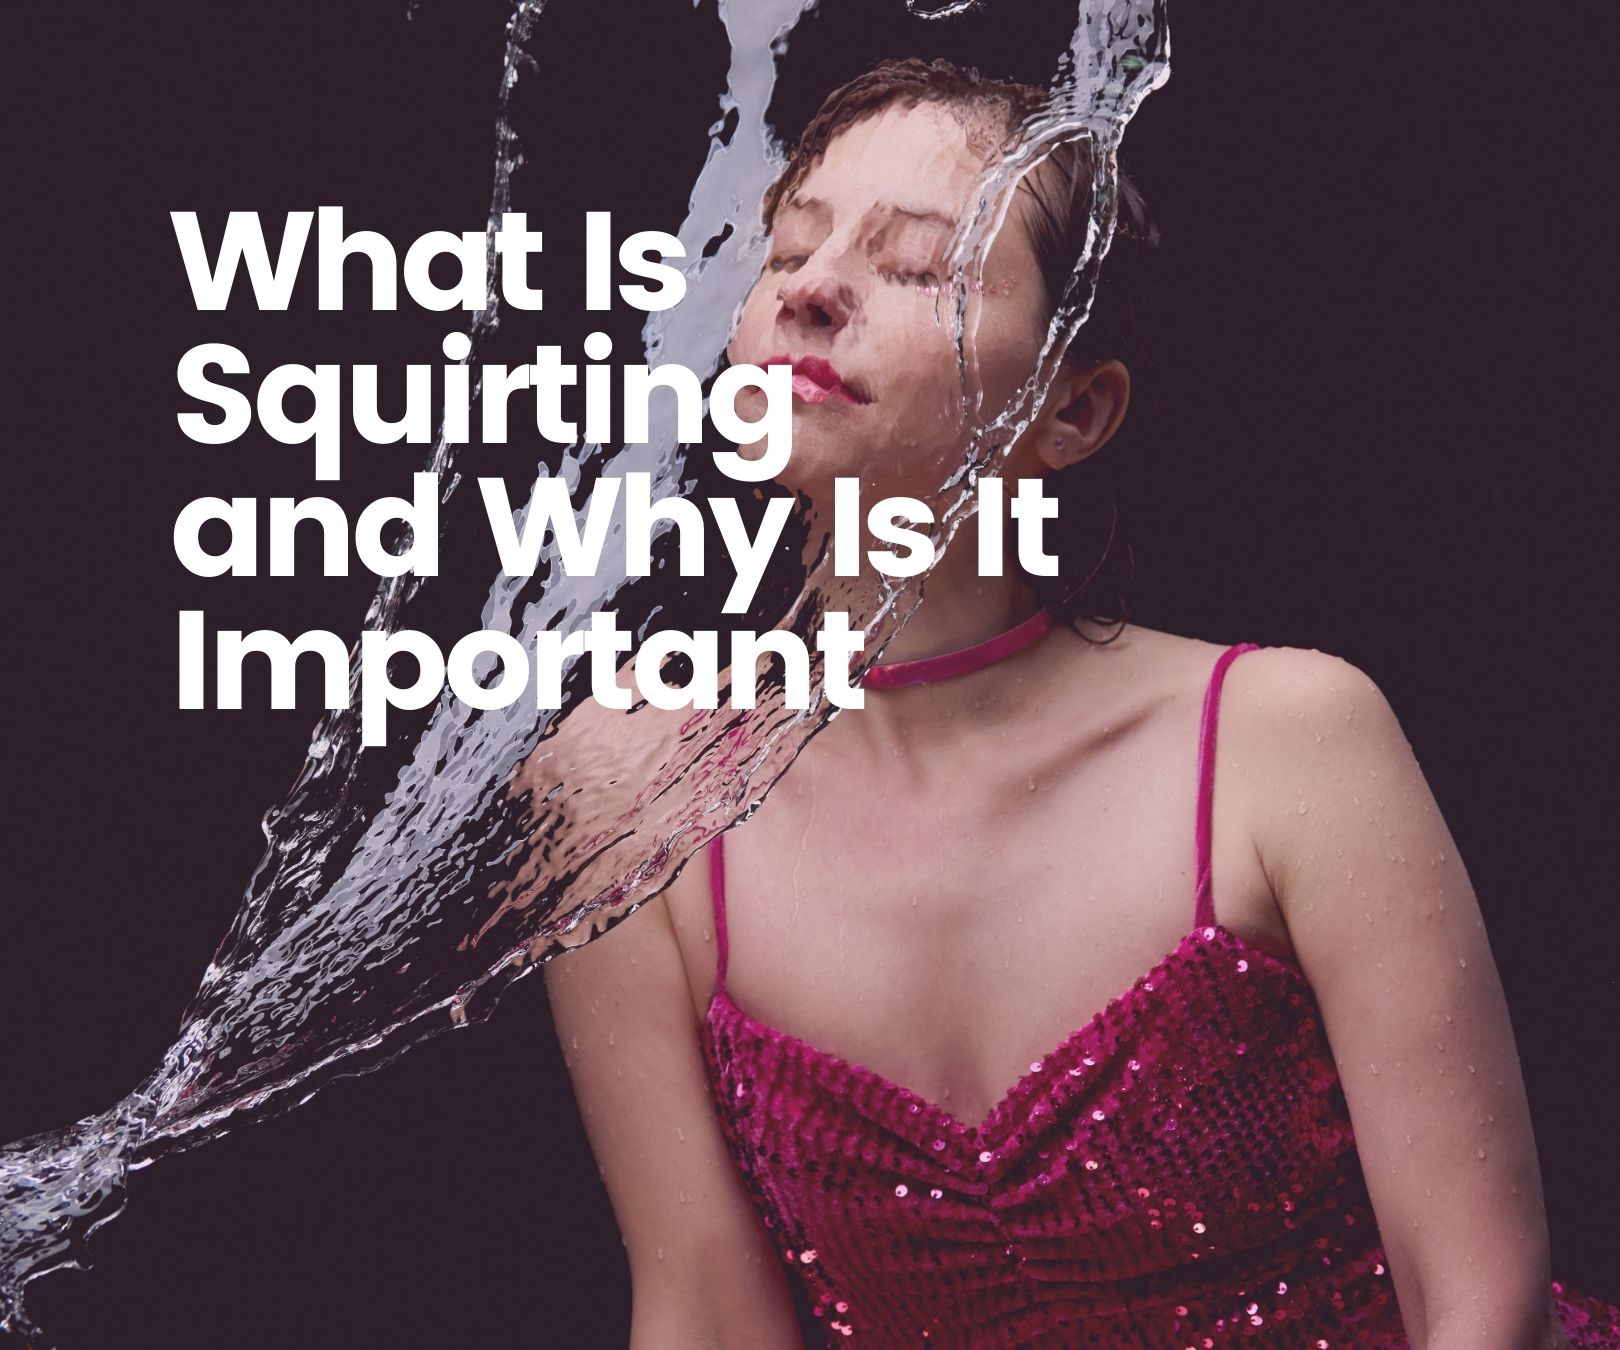 What Is Squirting and Why Is It Important